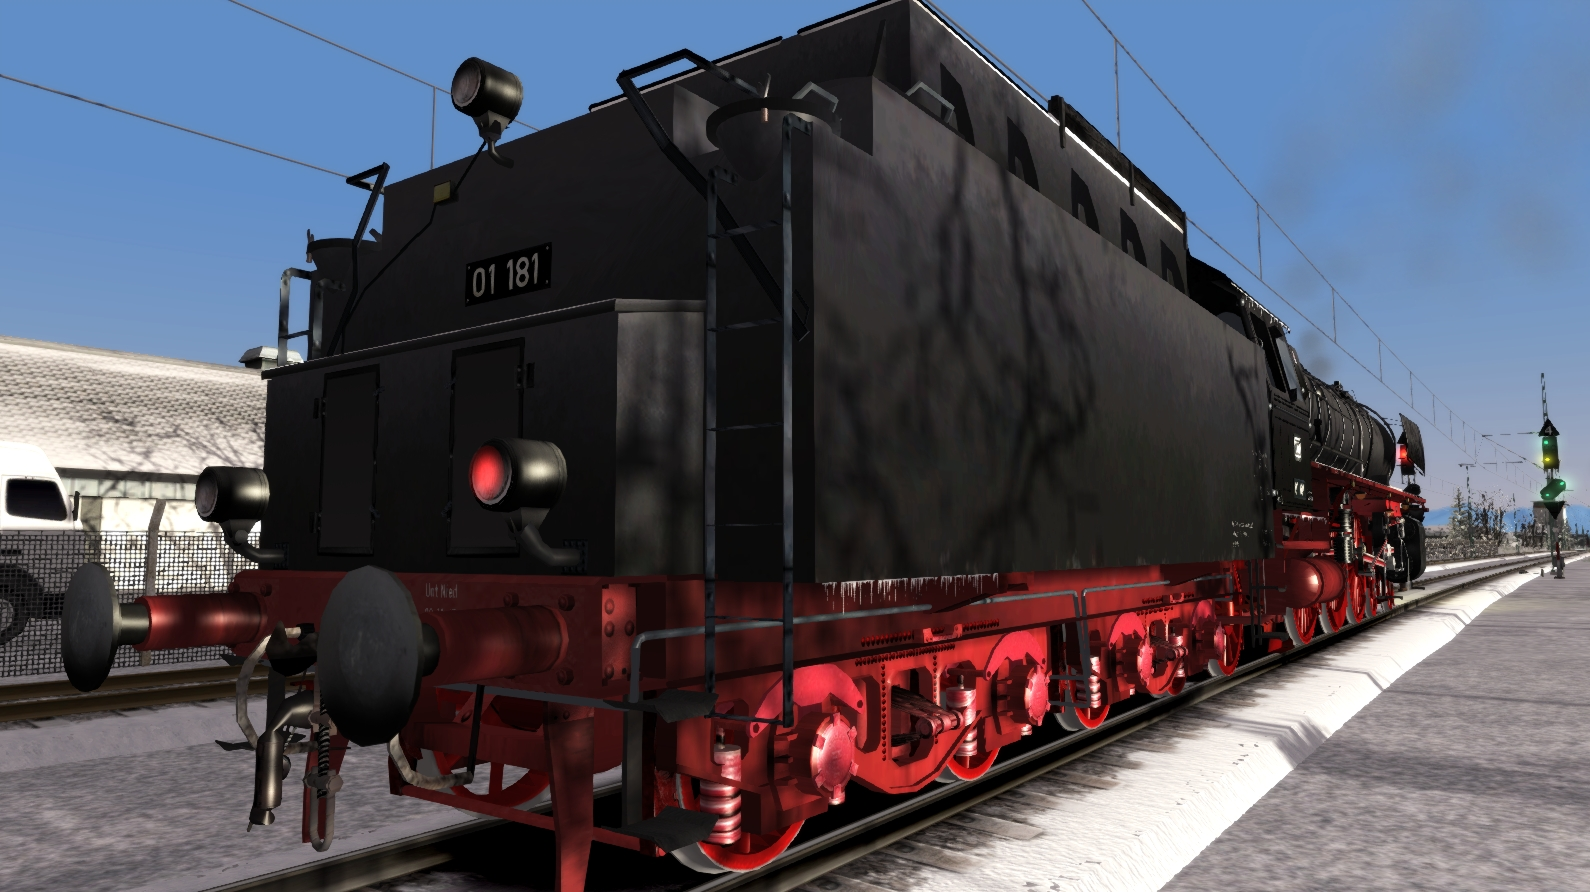 JUSTTRAINS - ROMANTIC RAILROADS GERMAN BR01 CLASS REBOILERED